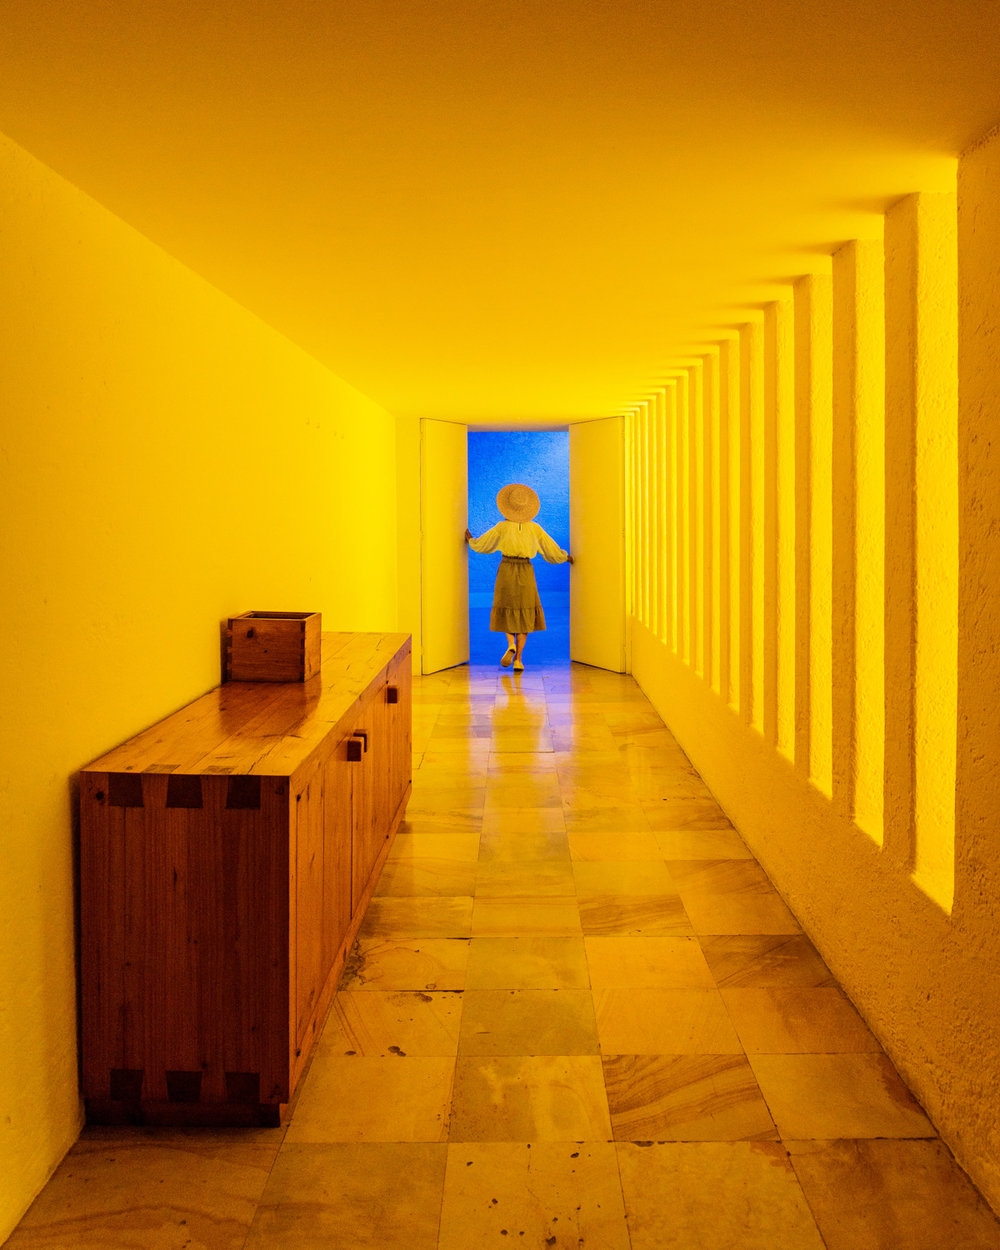 The yellow hallway at Casa Gilardi // The Most Instagrammable Spots in Mexico City #readysetjetset